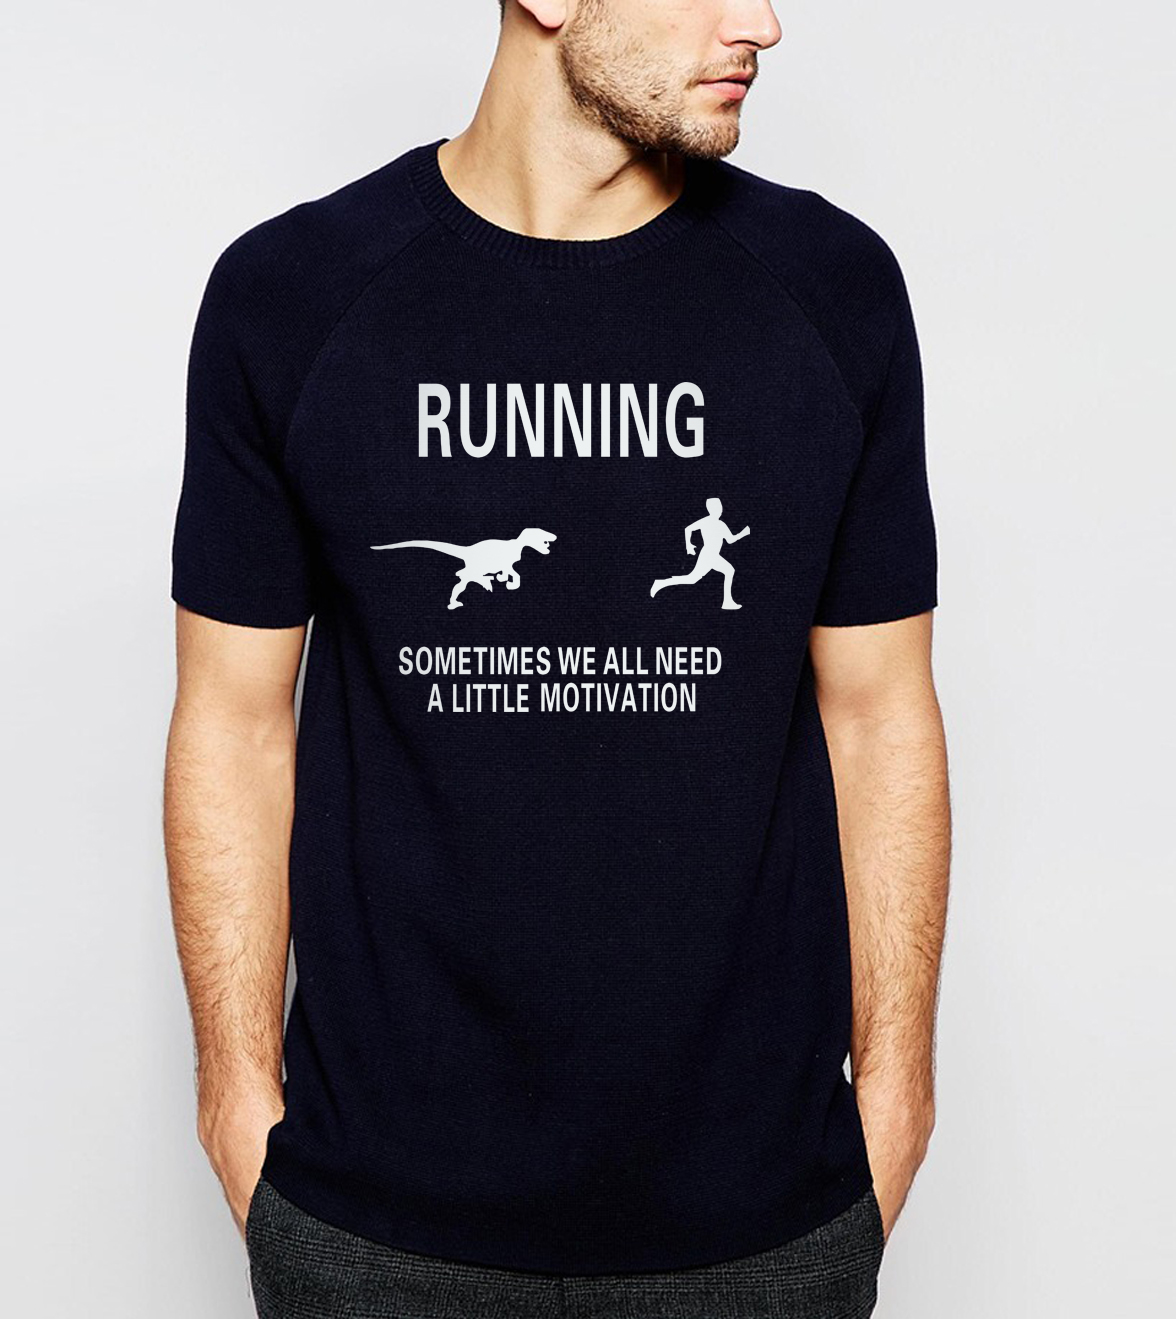 Funny   T     Shirt   2019 Summer Fashion Casual 100% Cotton Comfortable Hipster Men   T     Shirts   Short Sleeve O-neck Top Tees hipster men